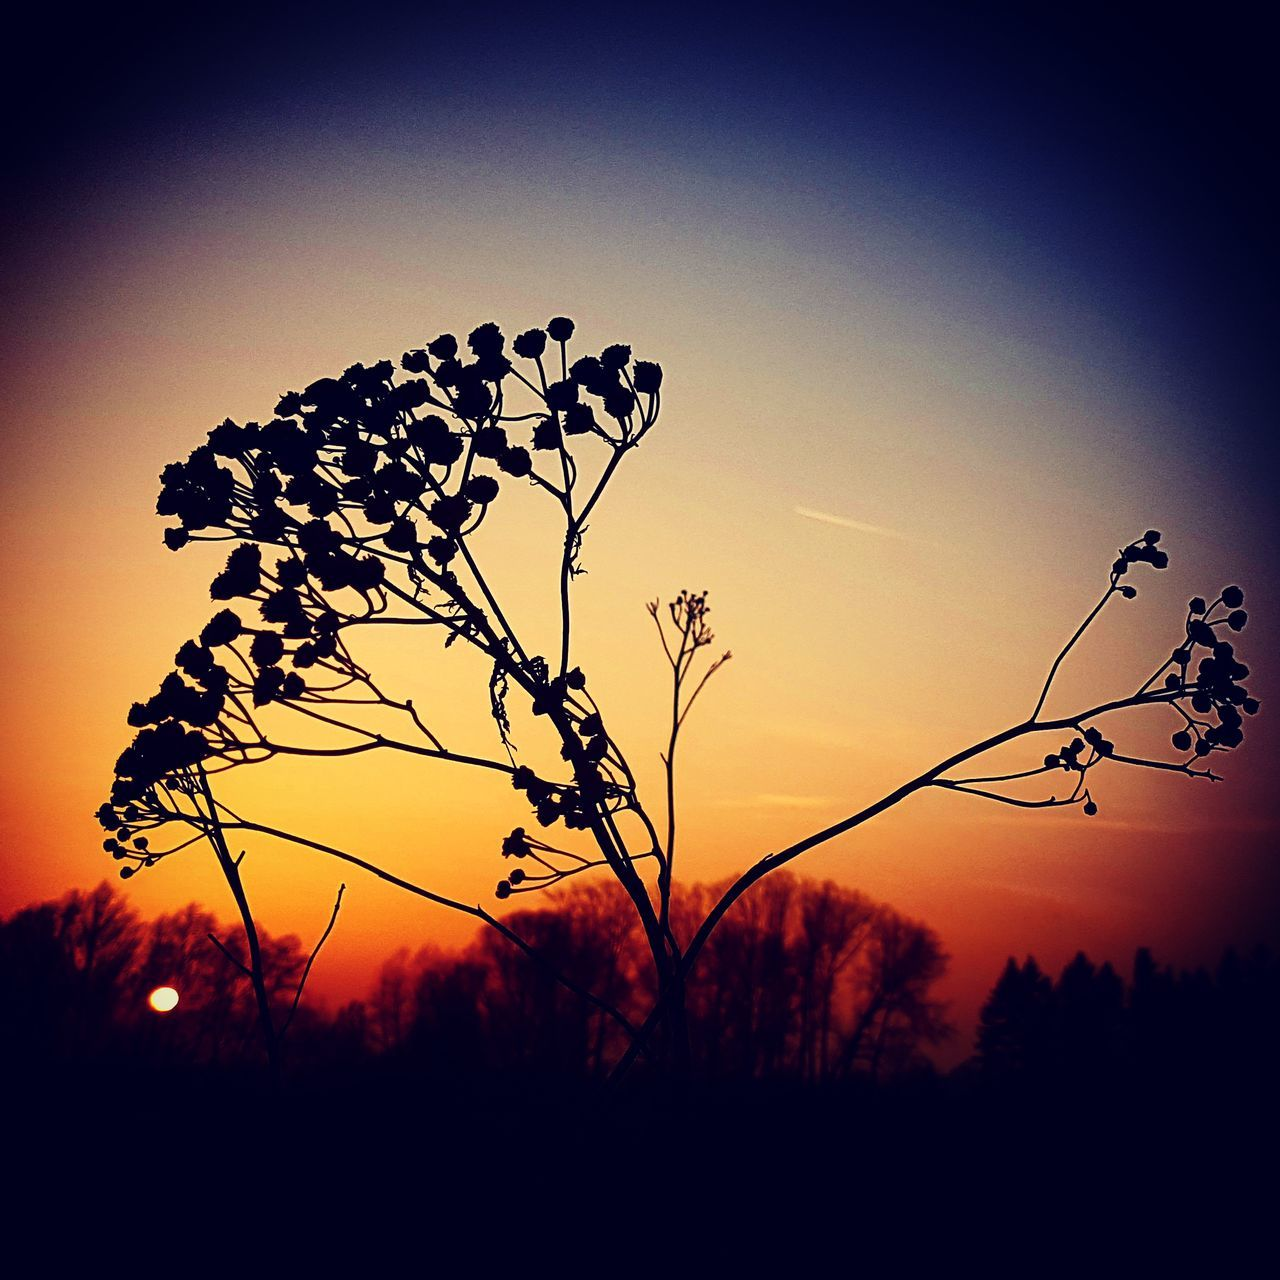 sunset, silhouette, growth, nature, sun, plant, outdoors, sky, landscape, no people, beauty in nature, tree